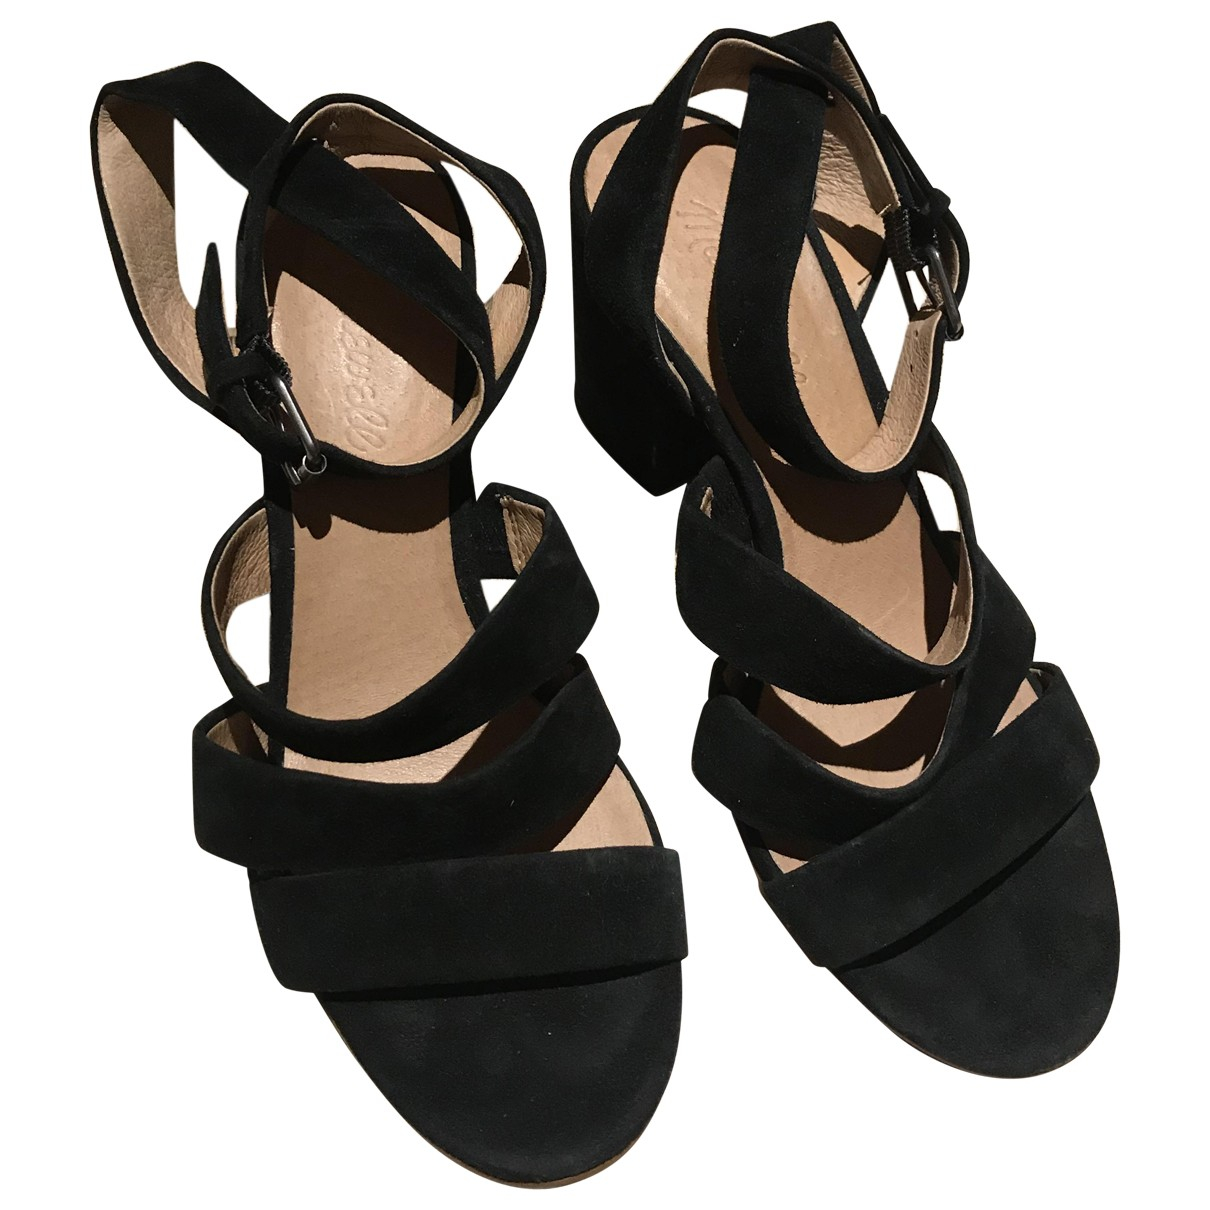 Madewell \N Black Leather Heels for Women 6.5 US